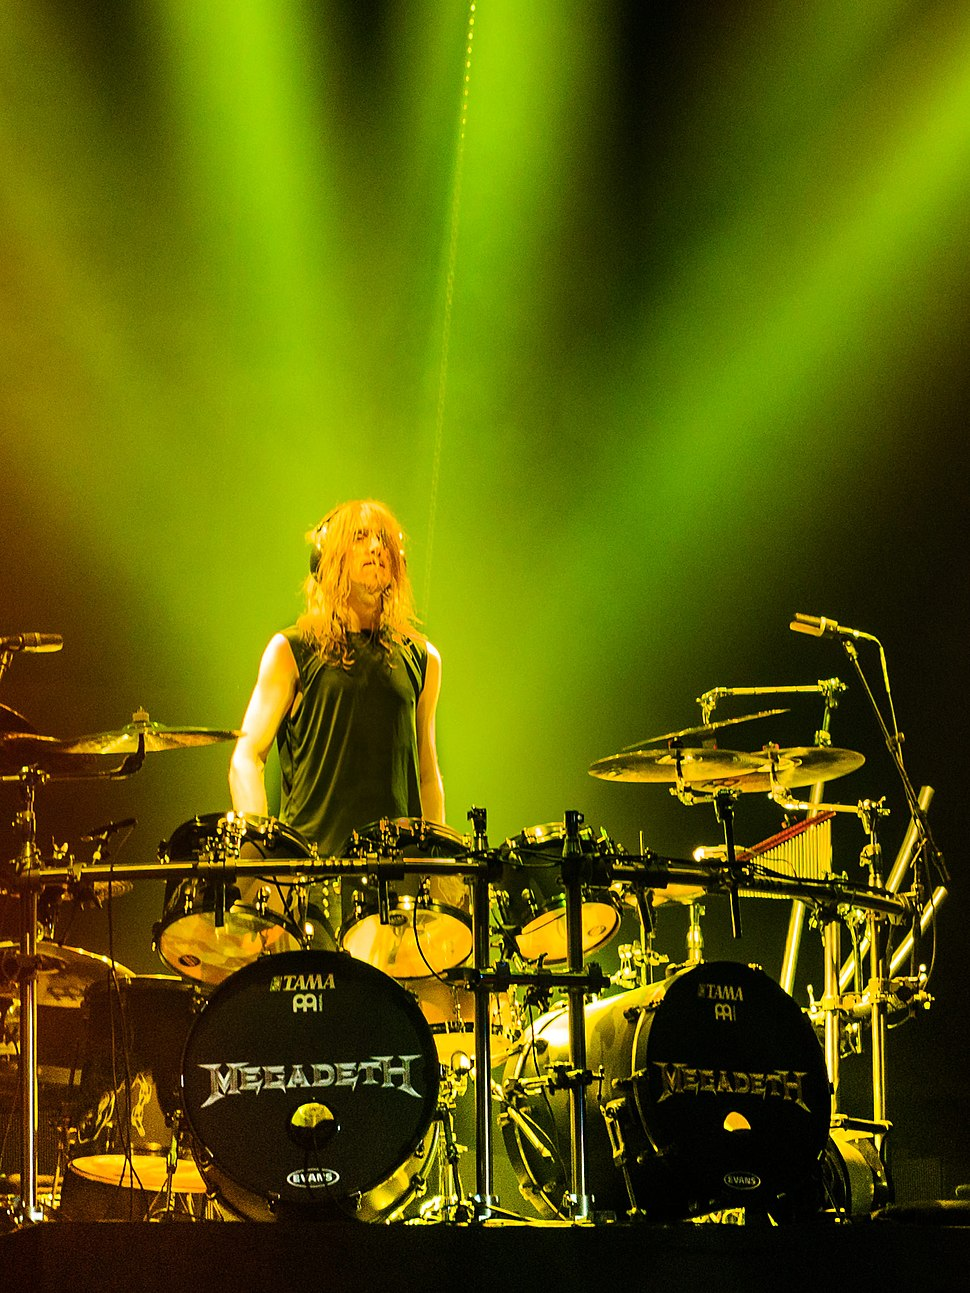 Dirk Verbeuren on stage with Megadeth at The O2, London, 2018-06-16